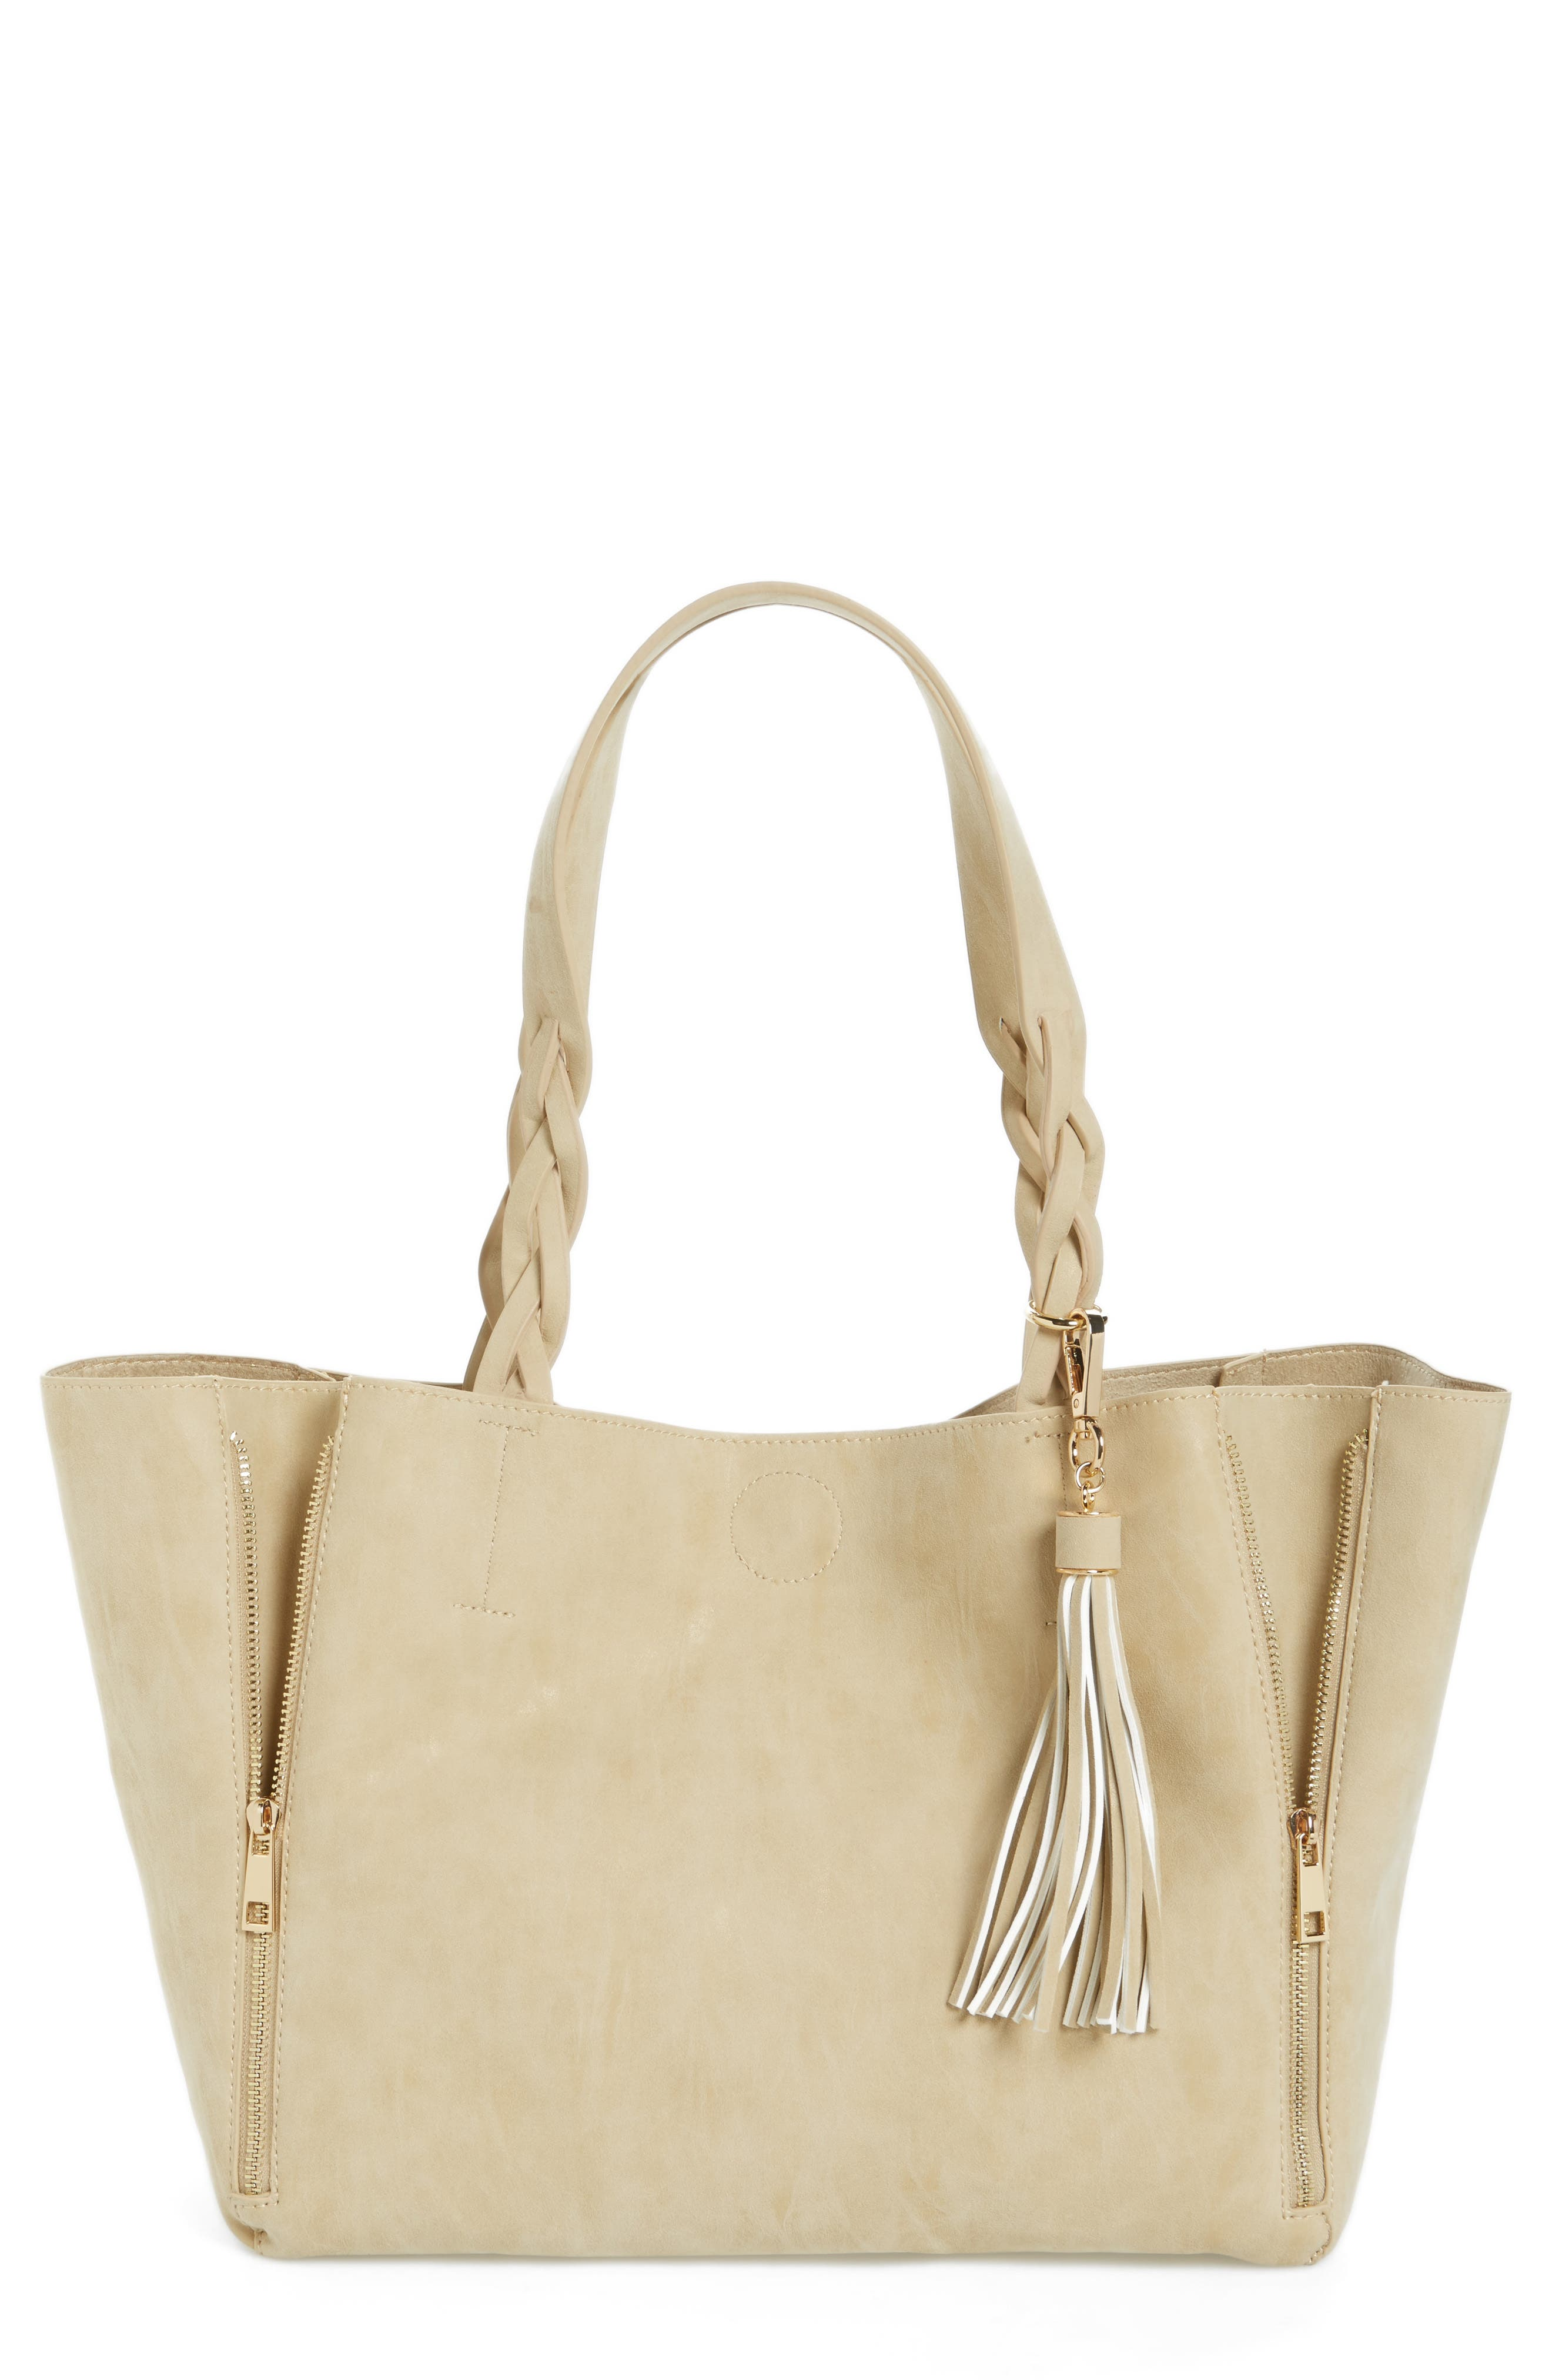 Alternate Image 1 Selected - BP. Faux Leather Braided Handle Tote